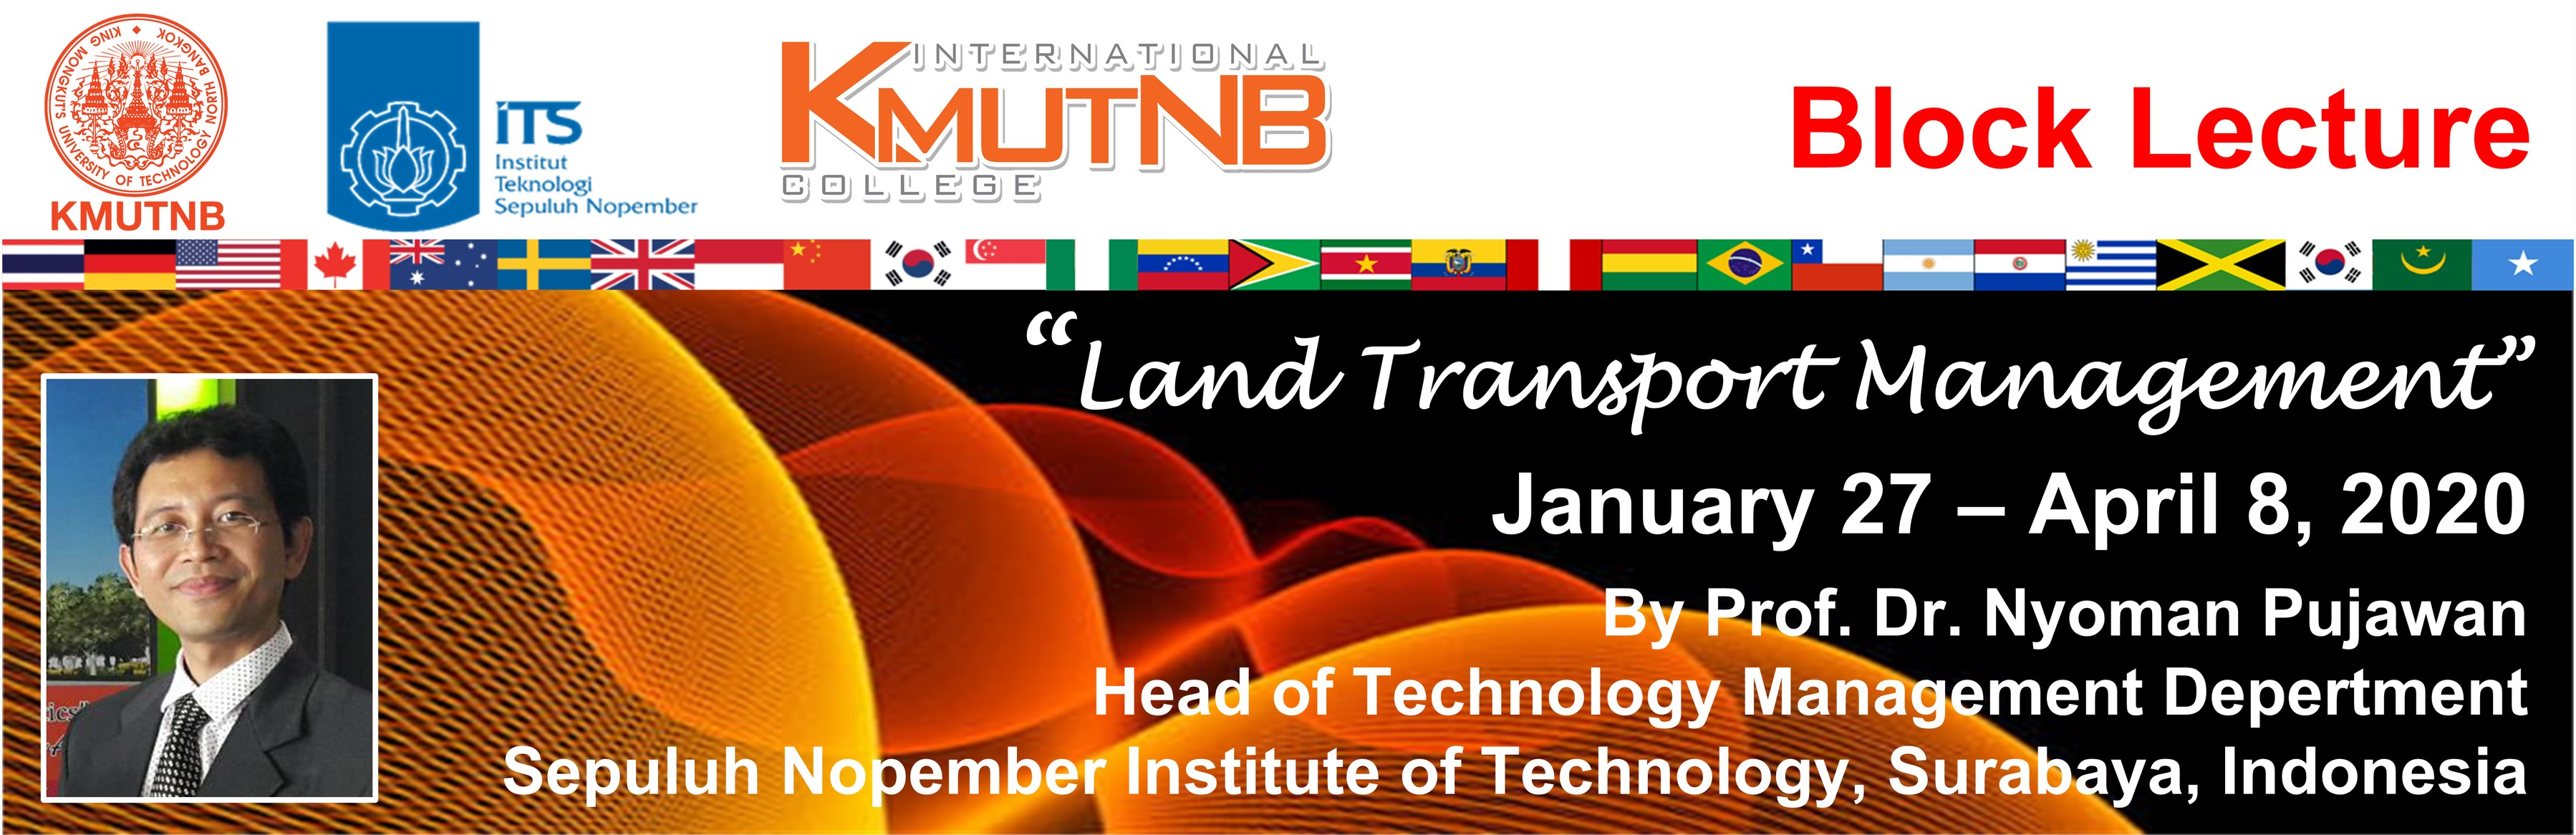 Block Lecture 2020: Land Transport Management